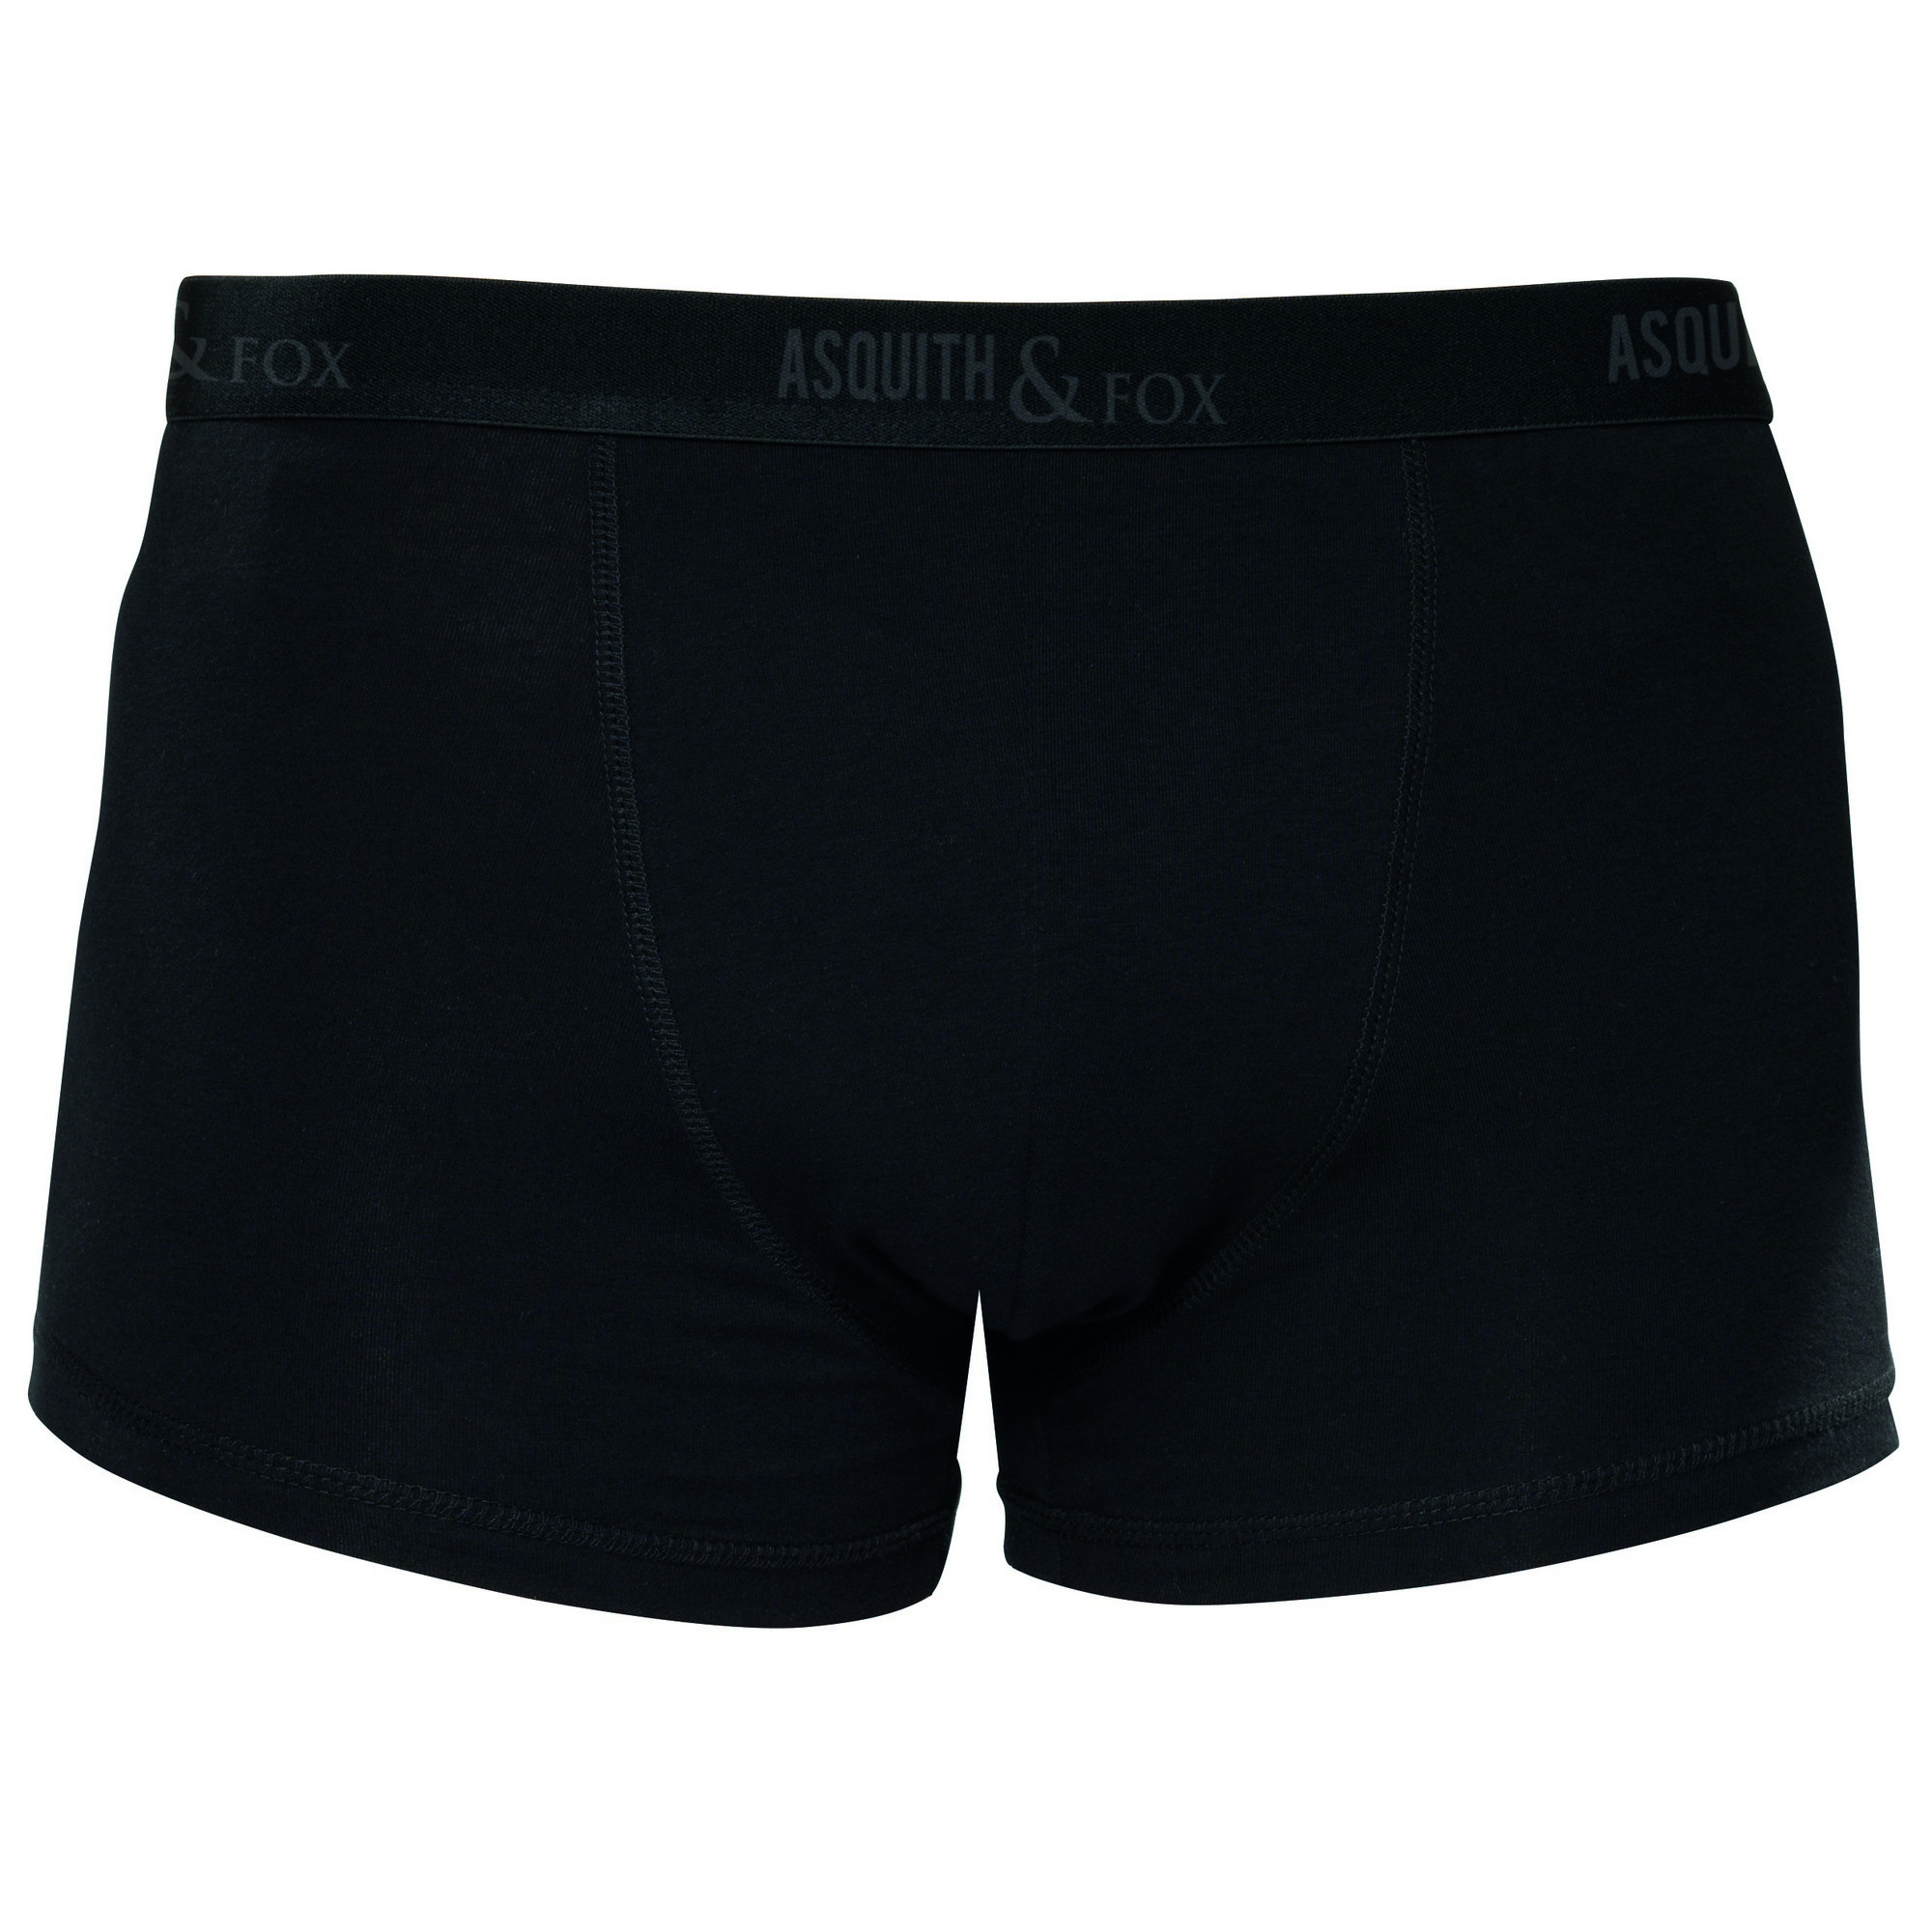 miniature 8 - Asquith & Fox - Boxers - Homme (RW4910)